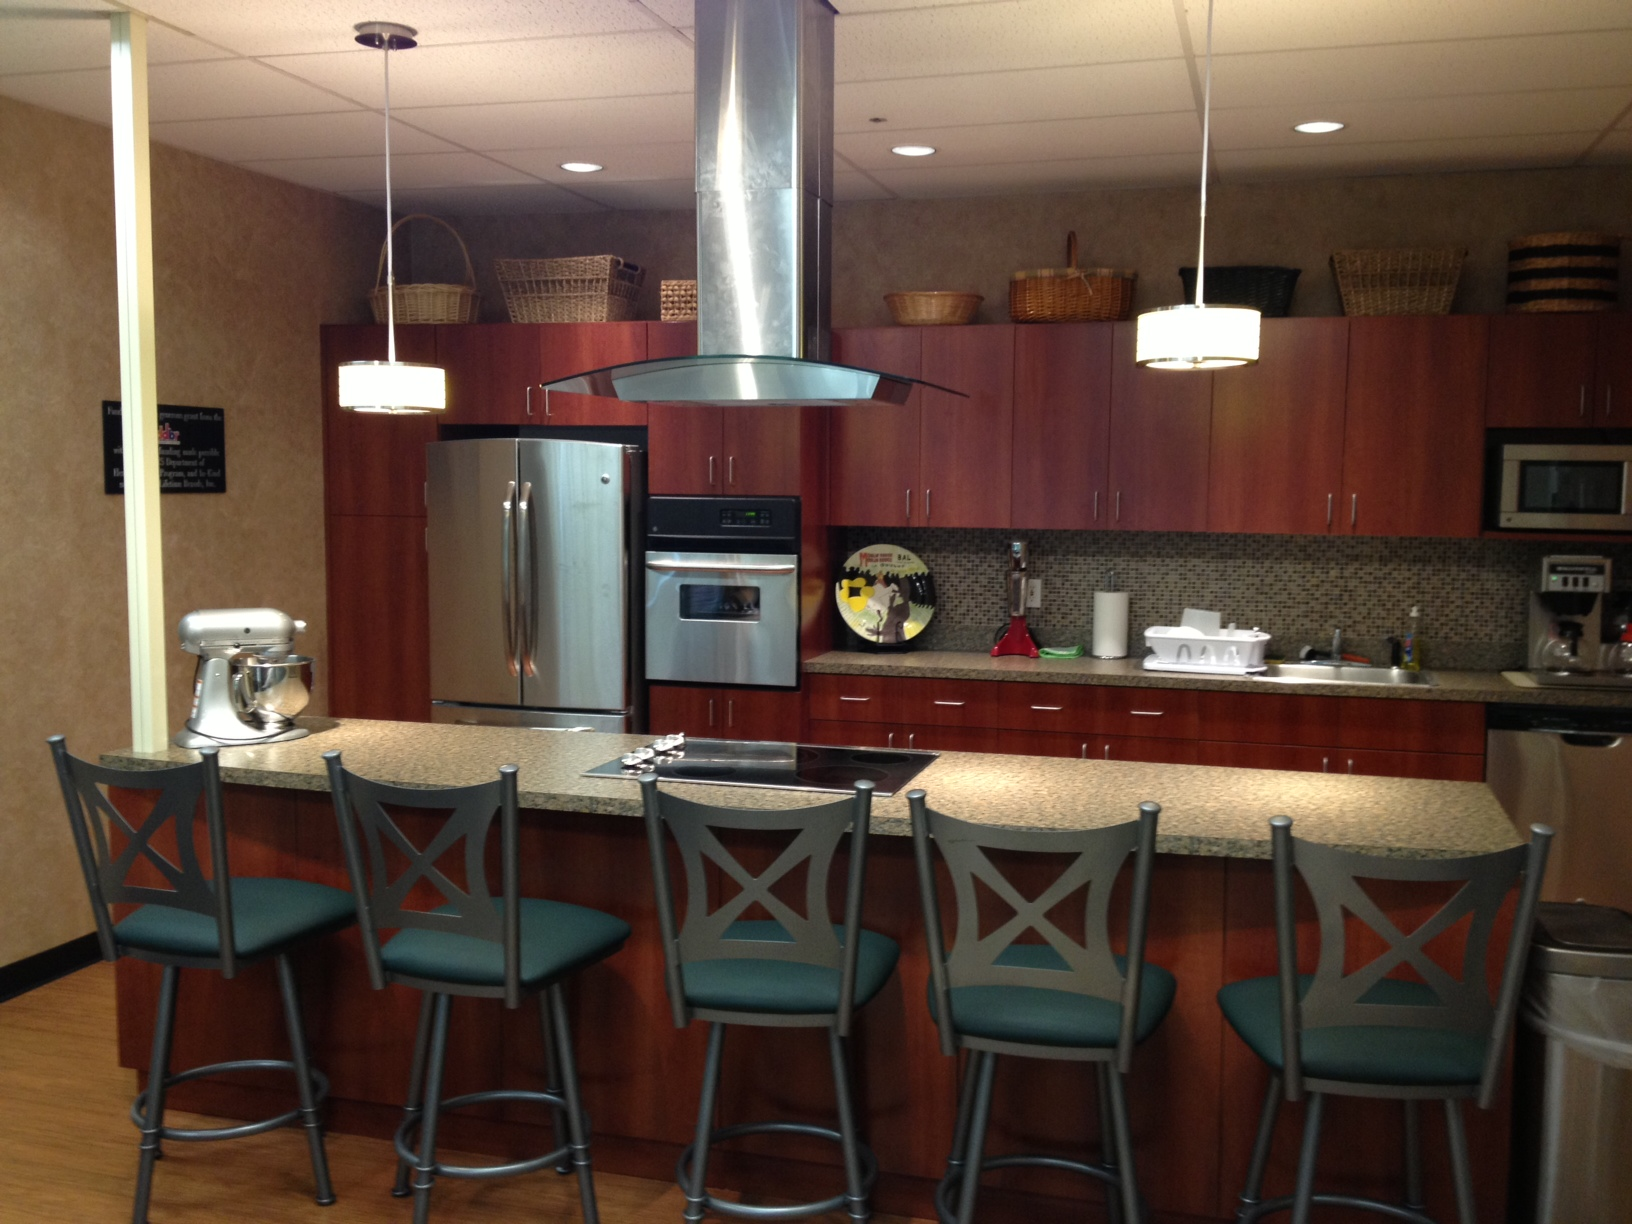 Long Island Cares Cuts Ribbon On New Ddbr Kitchen Studio Long Island Cares Inc